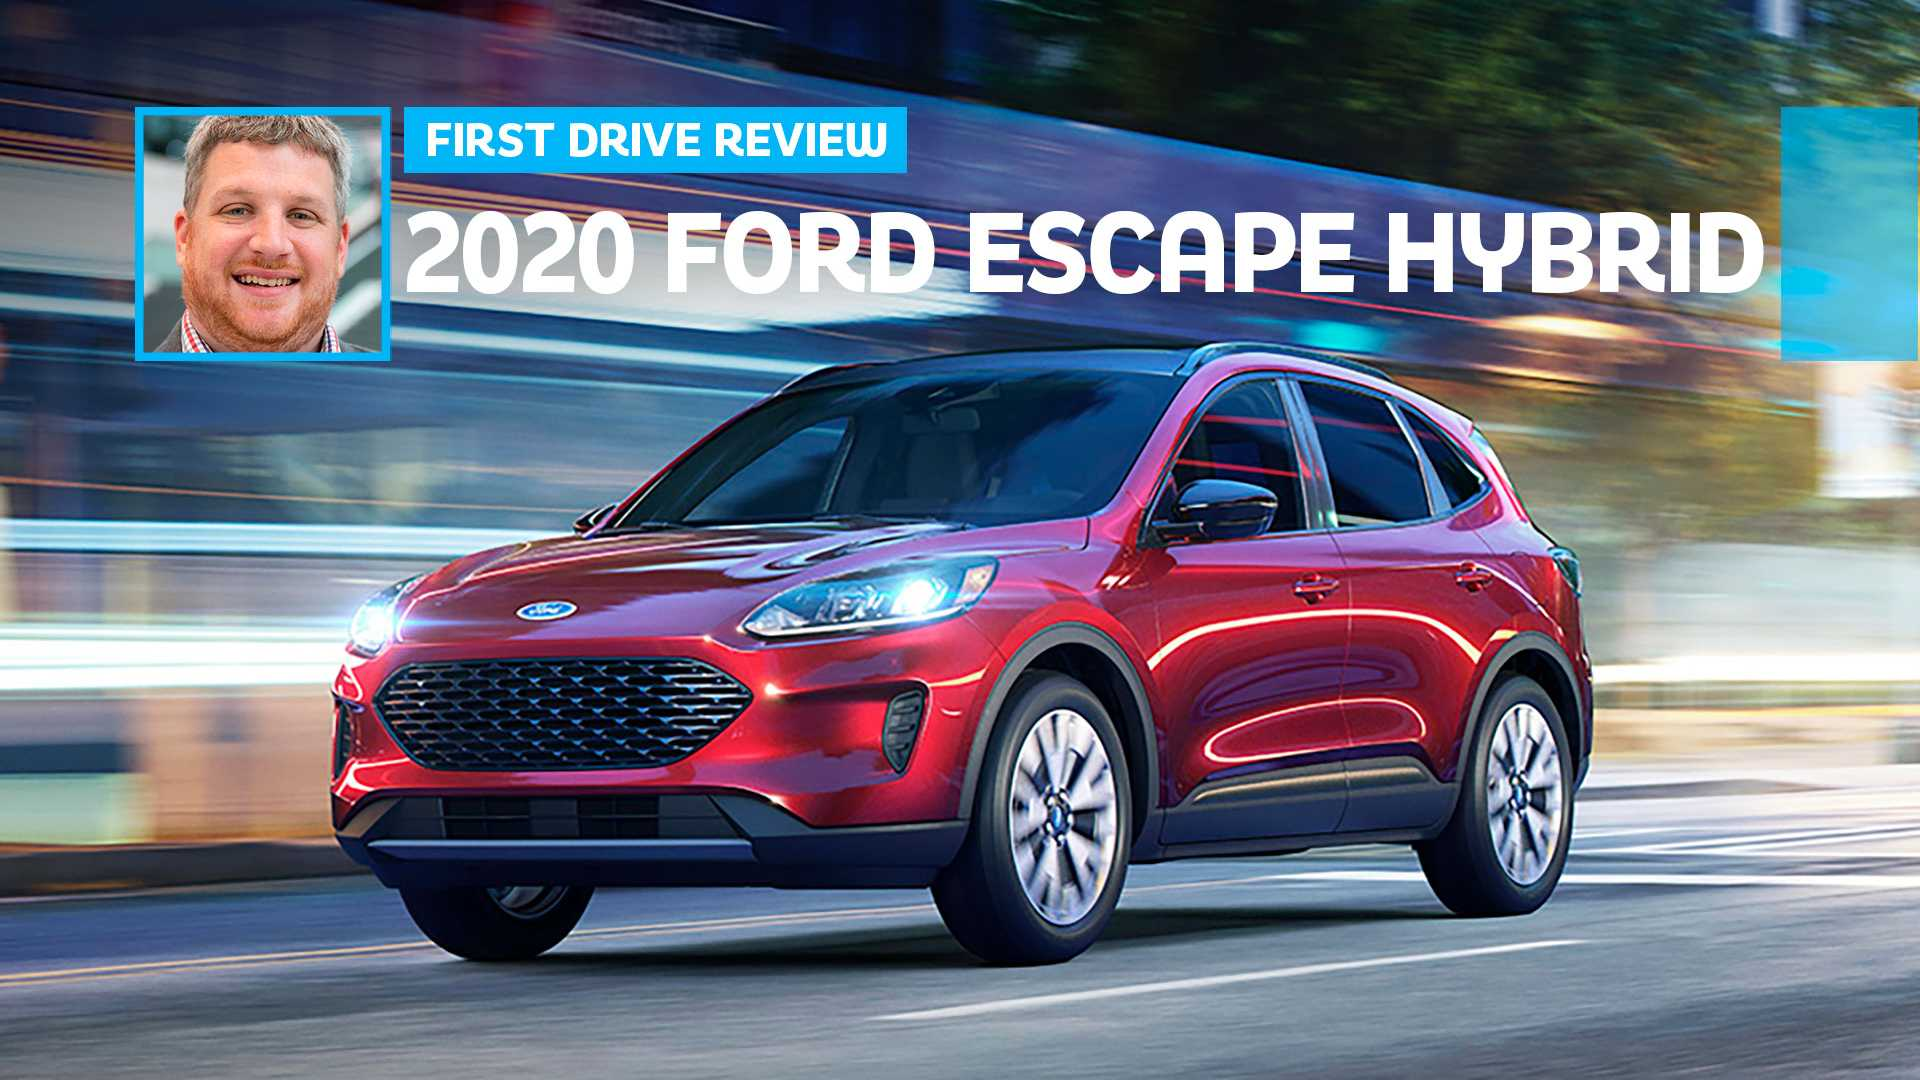 Ford Hybrid Suv >> 2020 Ford Escape Hybrid First Drive A Smart Buy But For